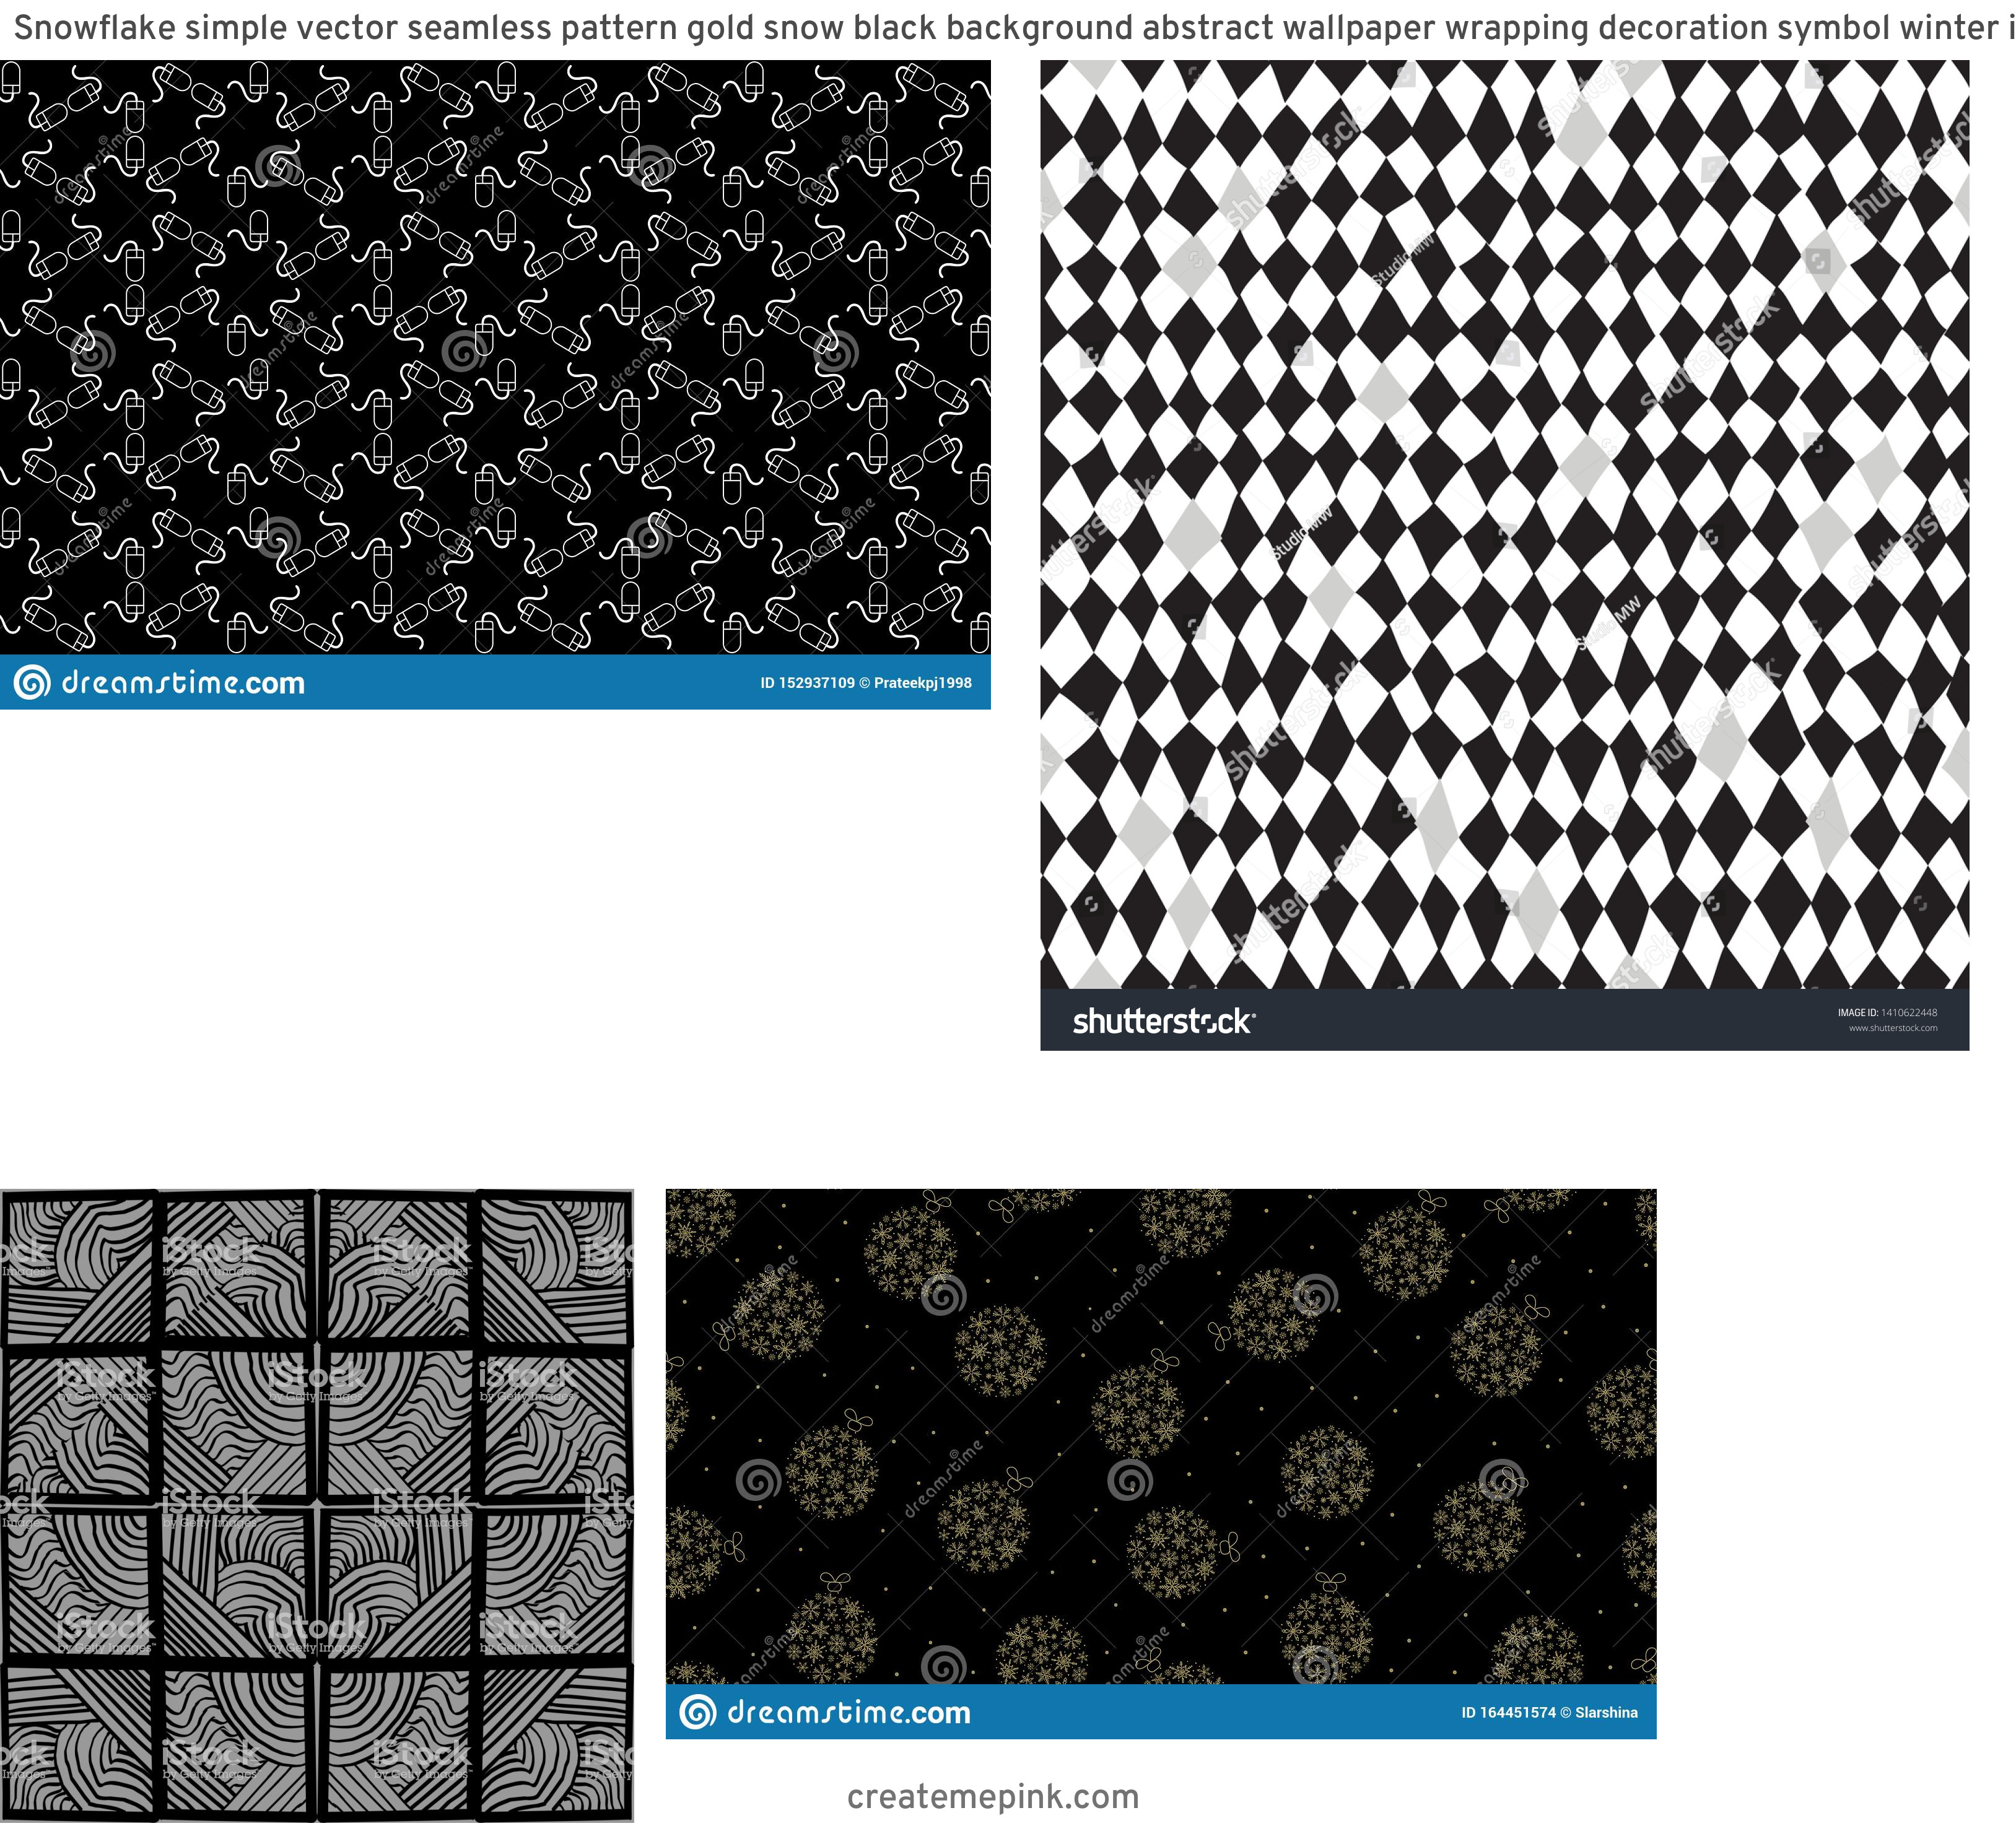 Simple Black Decorative Vector Patterns: Snowflake Simple Vector Seamless Pattern Gold Snow Black Background Abstract Wallpaper Wrapping Decoration Symbol Winter Image